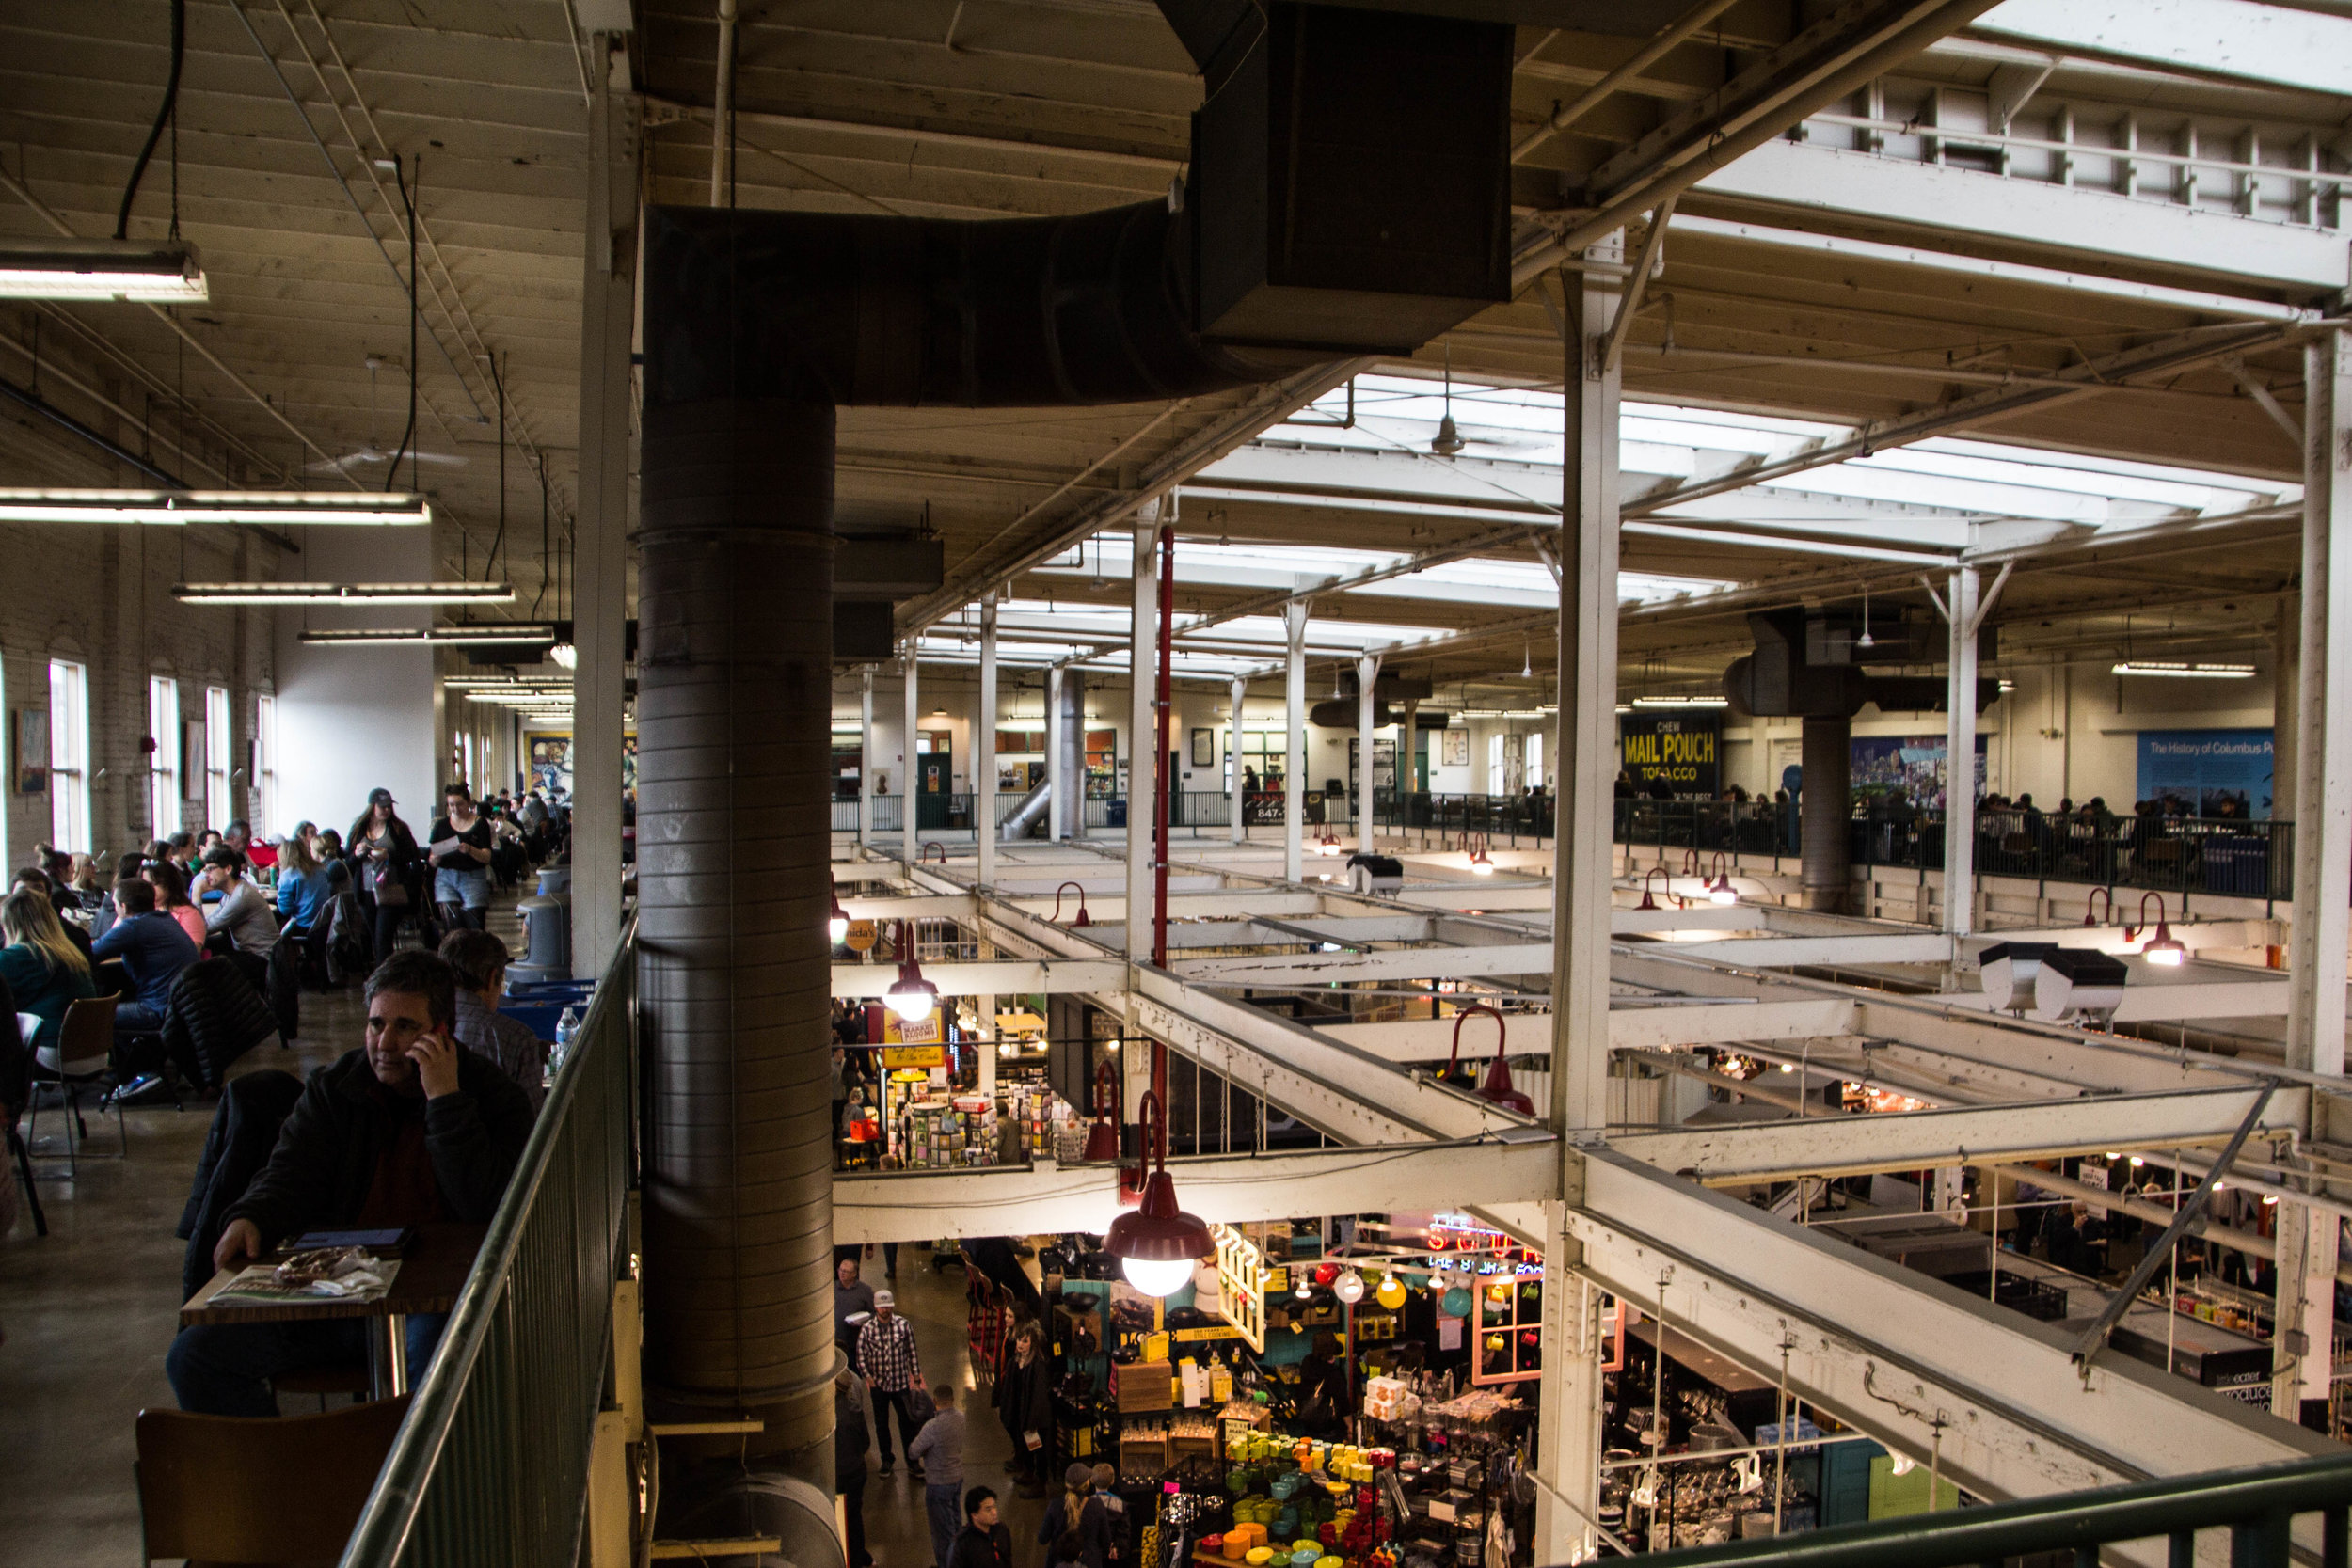 north market columbus ohio-5.jpg